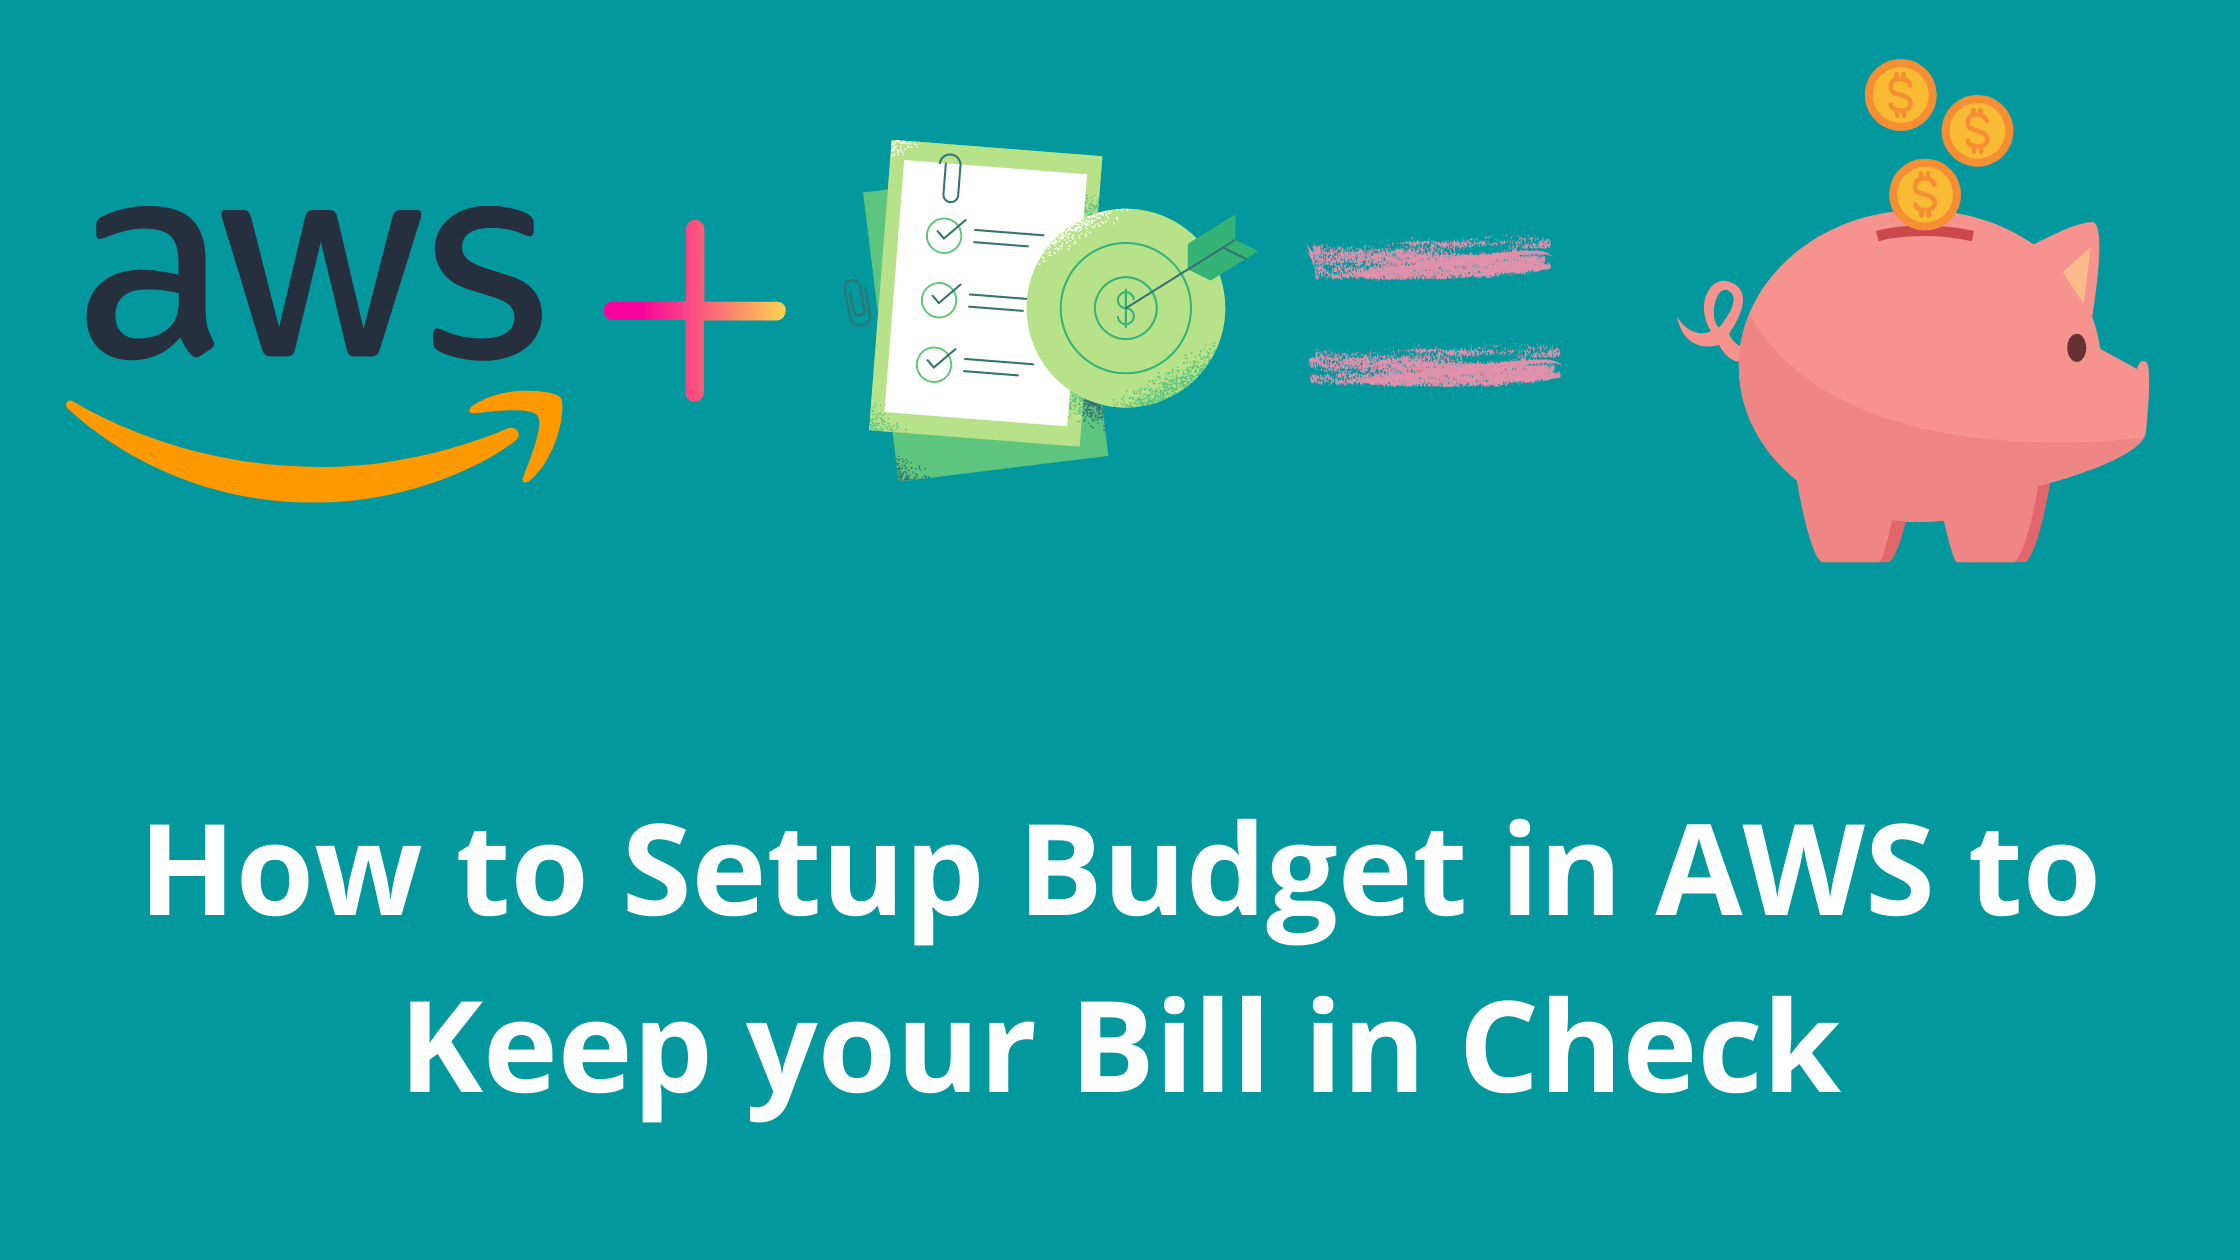 How to Setup Budget in AWS to Keep your Bill in Check